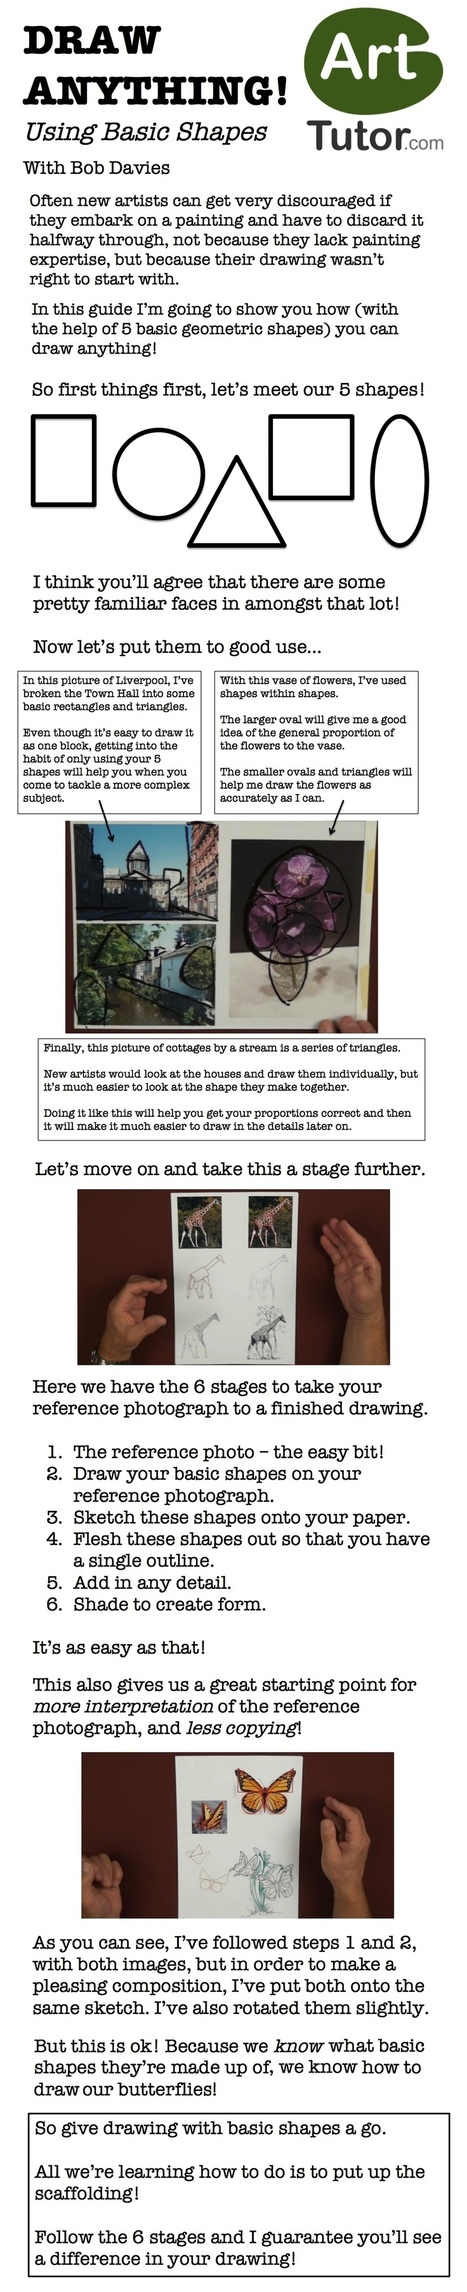 How To Draw Anything   art sculpture enseignement   Scoop.it